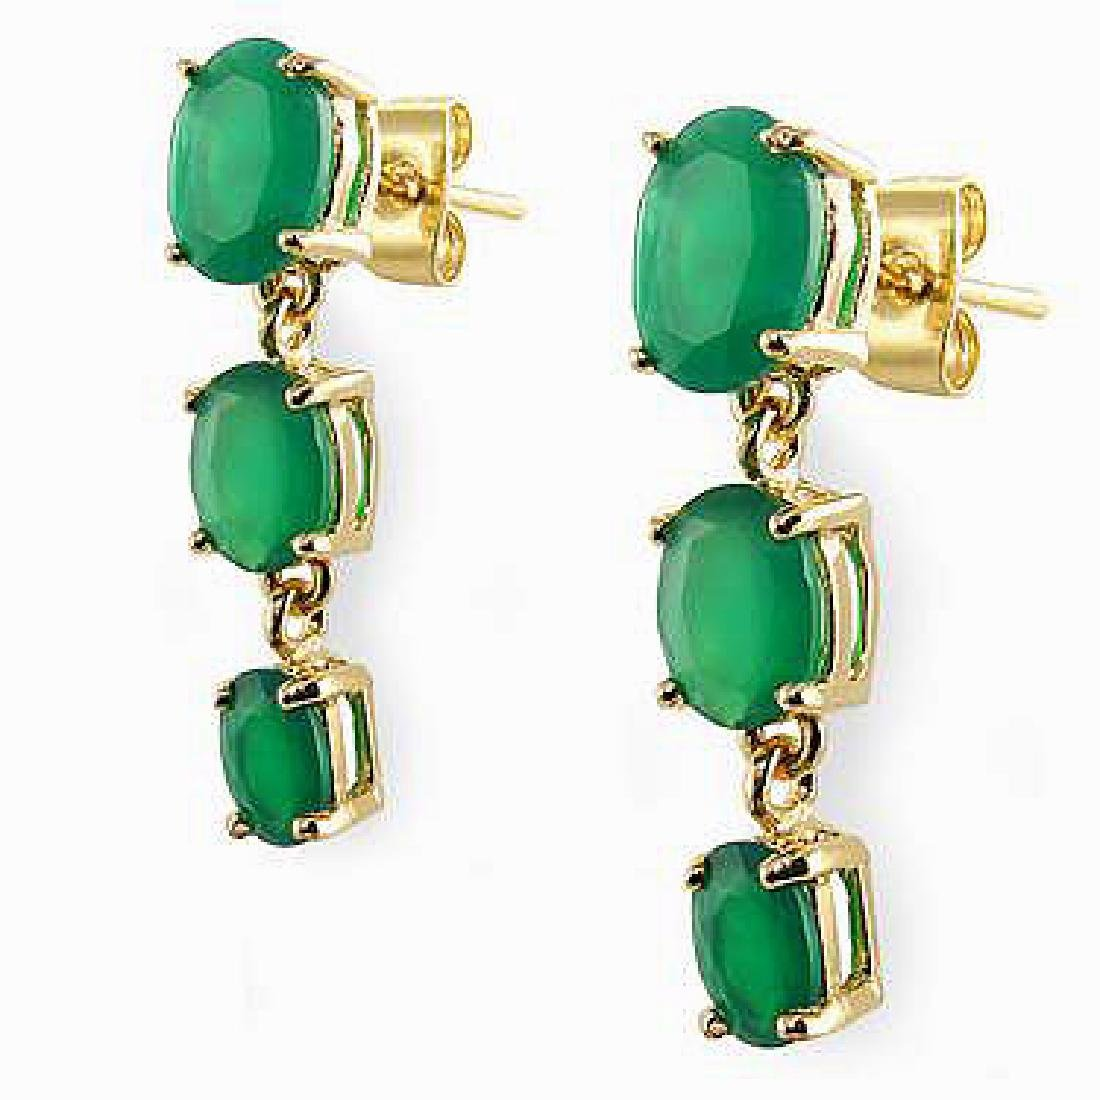 3.9 CT Green Agate Past Present Future Gold Earrings - 2